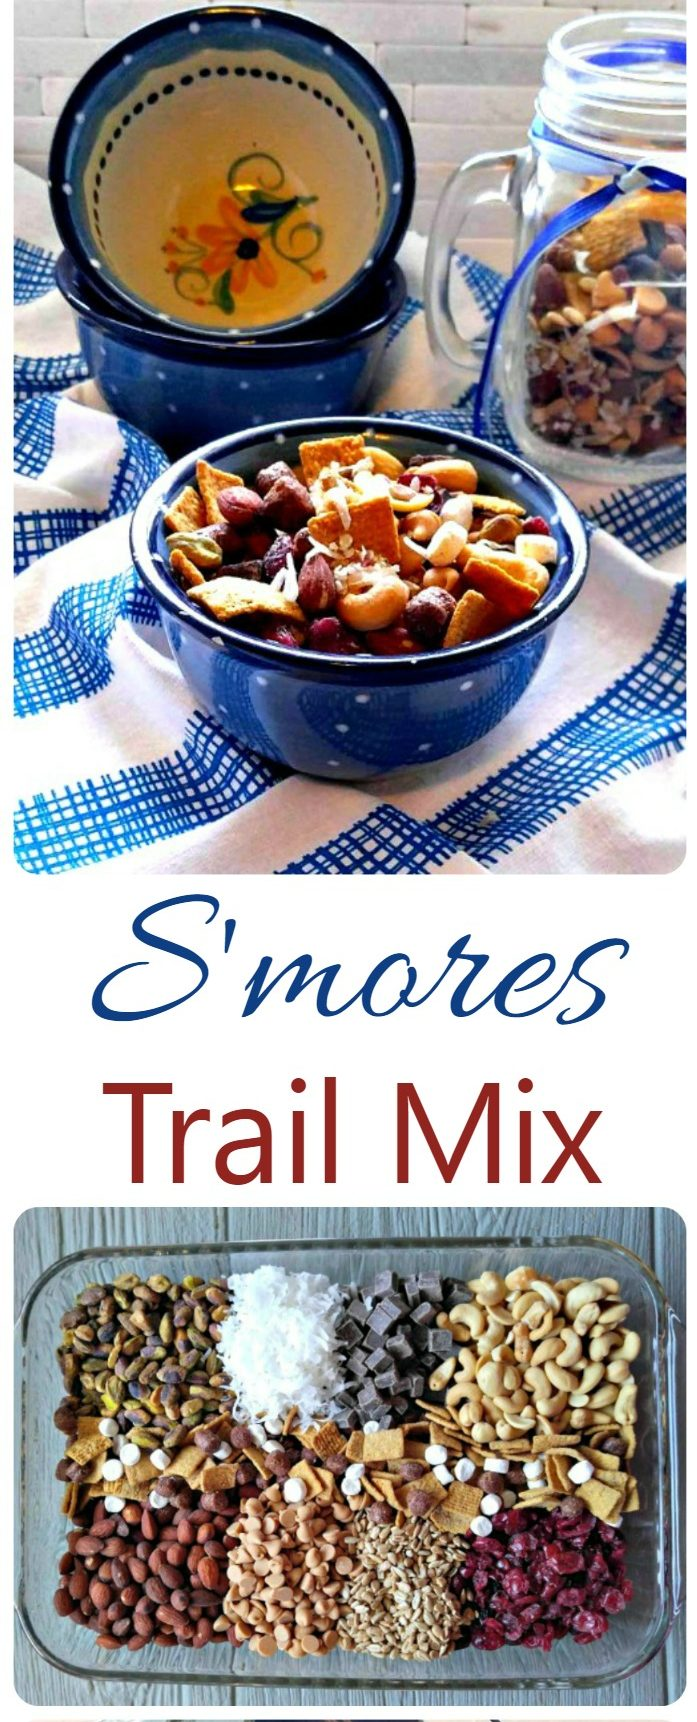 Bowl of trail mix and container of ingredients to make it with word reading S'mores Trail Mix.